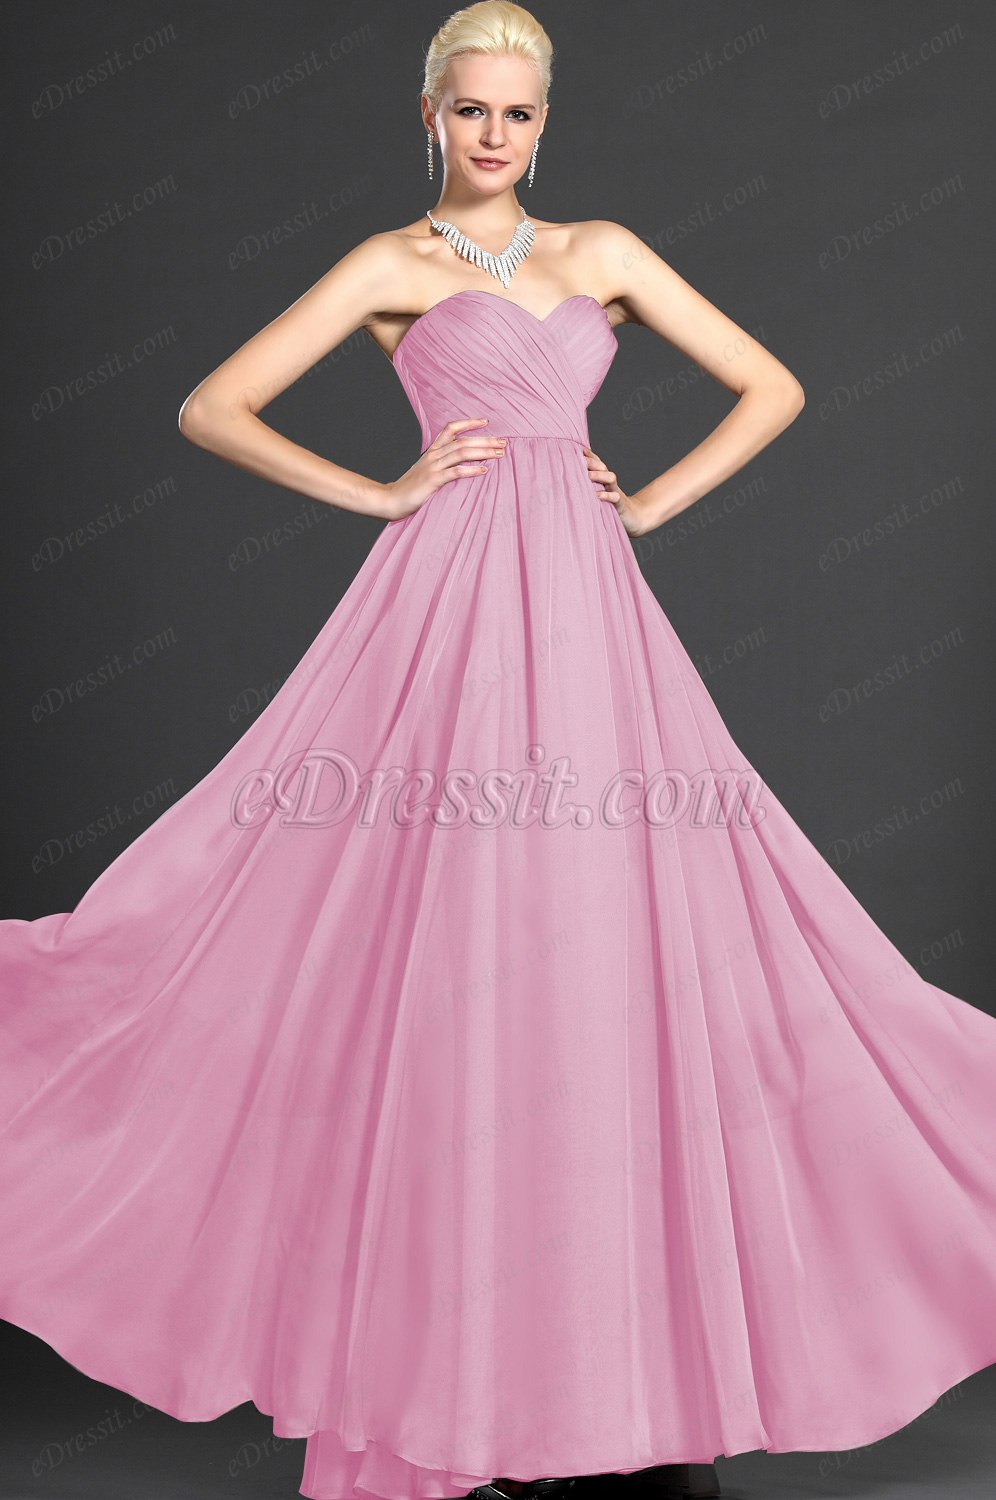 Clearance Sale !eDressit 2012 Sweet-Heart Strapless Evening Dress (00124608B)